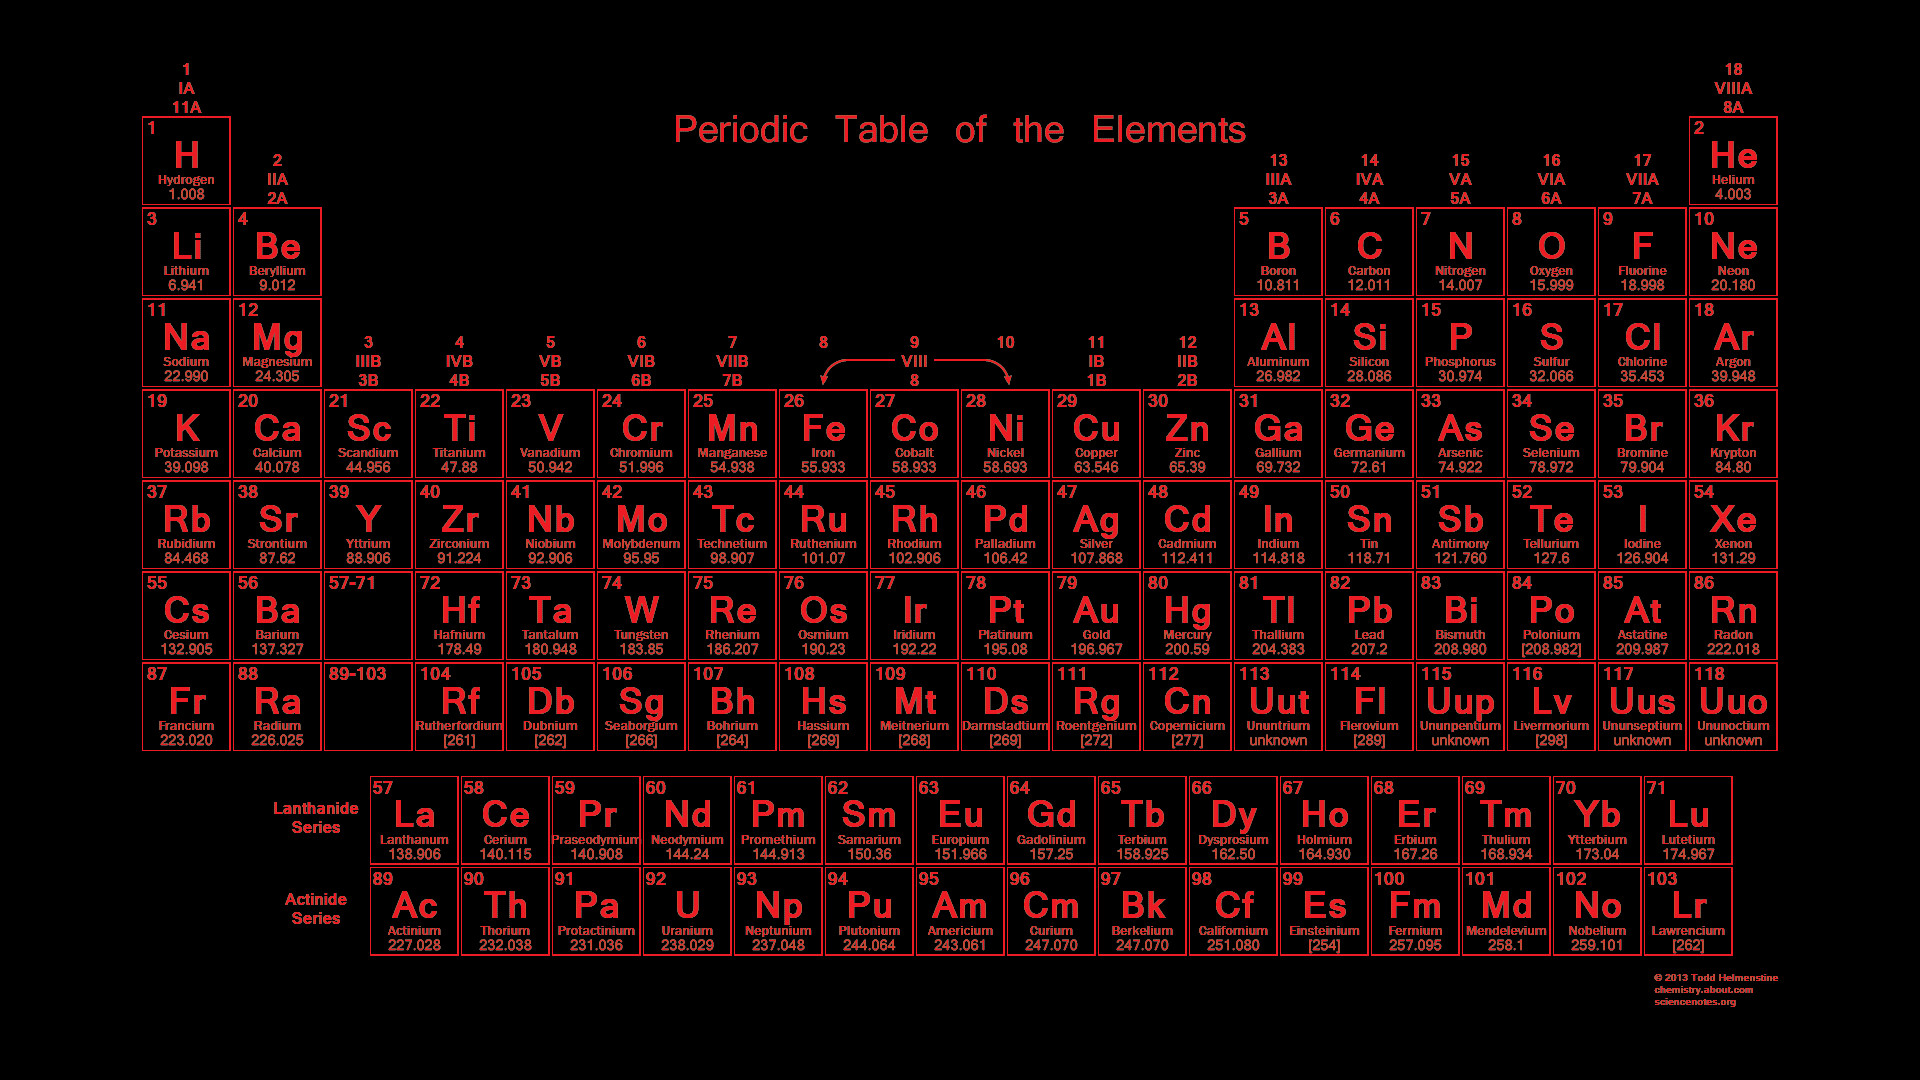 Hd periodic table wallpaper 70 images 1920x1080 hd wallpaper of periodic table wallpaper 118 elements urtaz Choice Image